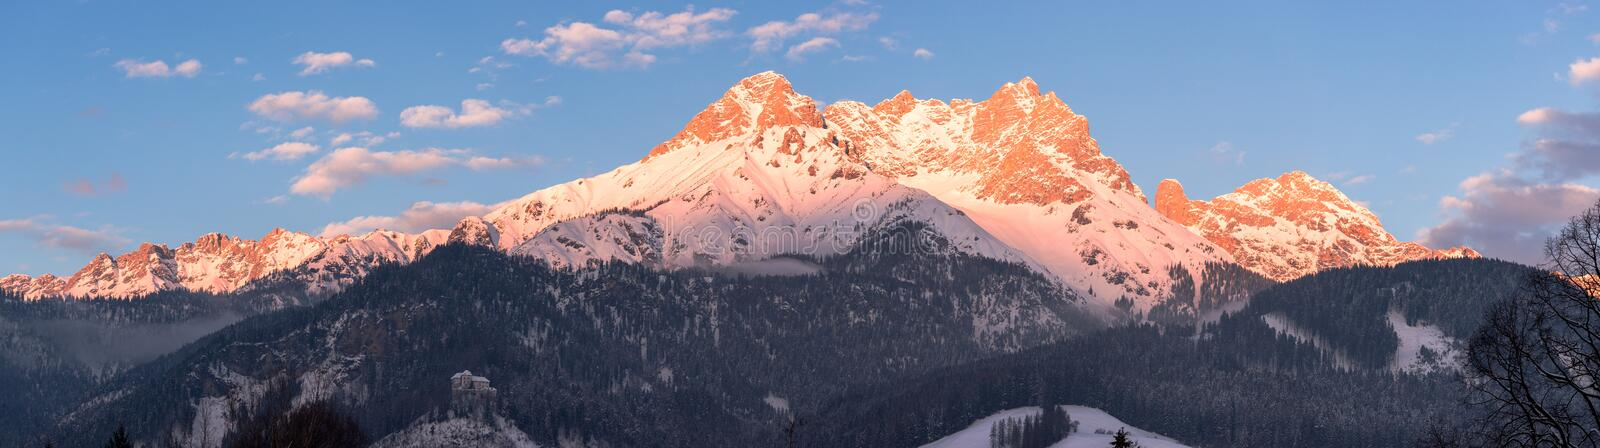 Idyllic snowy mountain peaks, setting sun in winter, landscape, Alps, Austria. Idyllic scenery with snowy mountains in the evening sun, Alps, Austria winter peak royalty free stock images